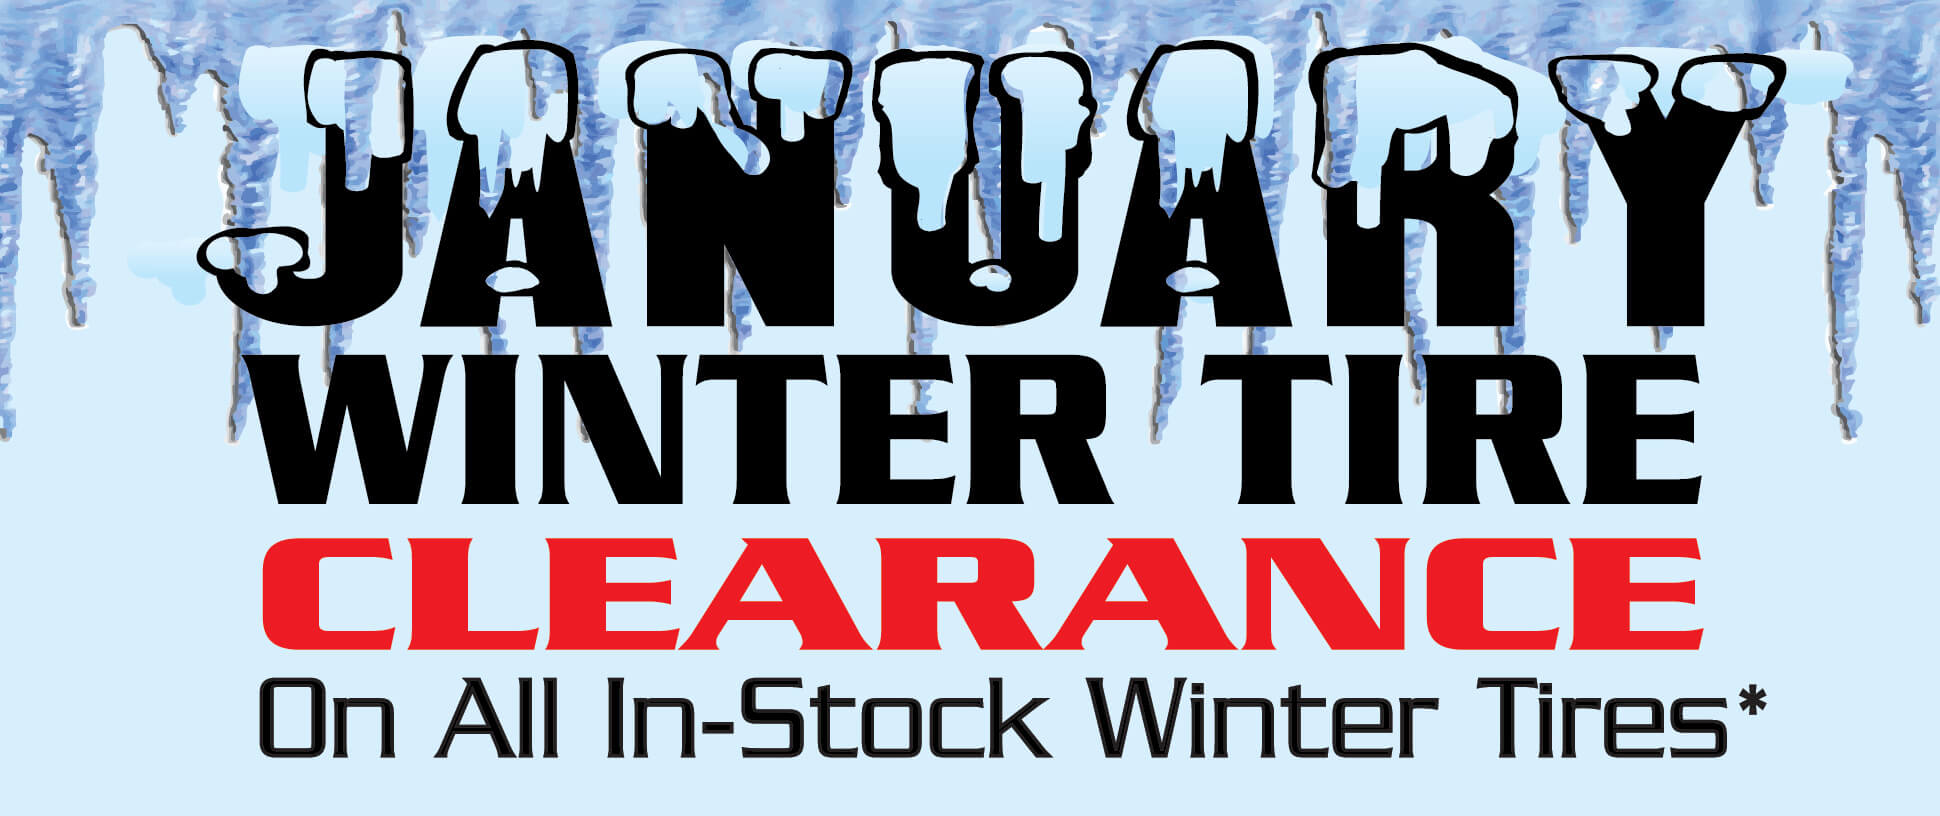 Winter Tire Clearance Sale